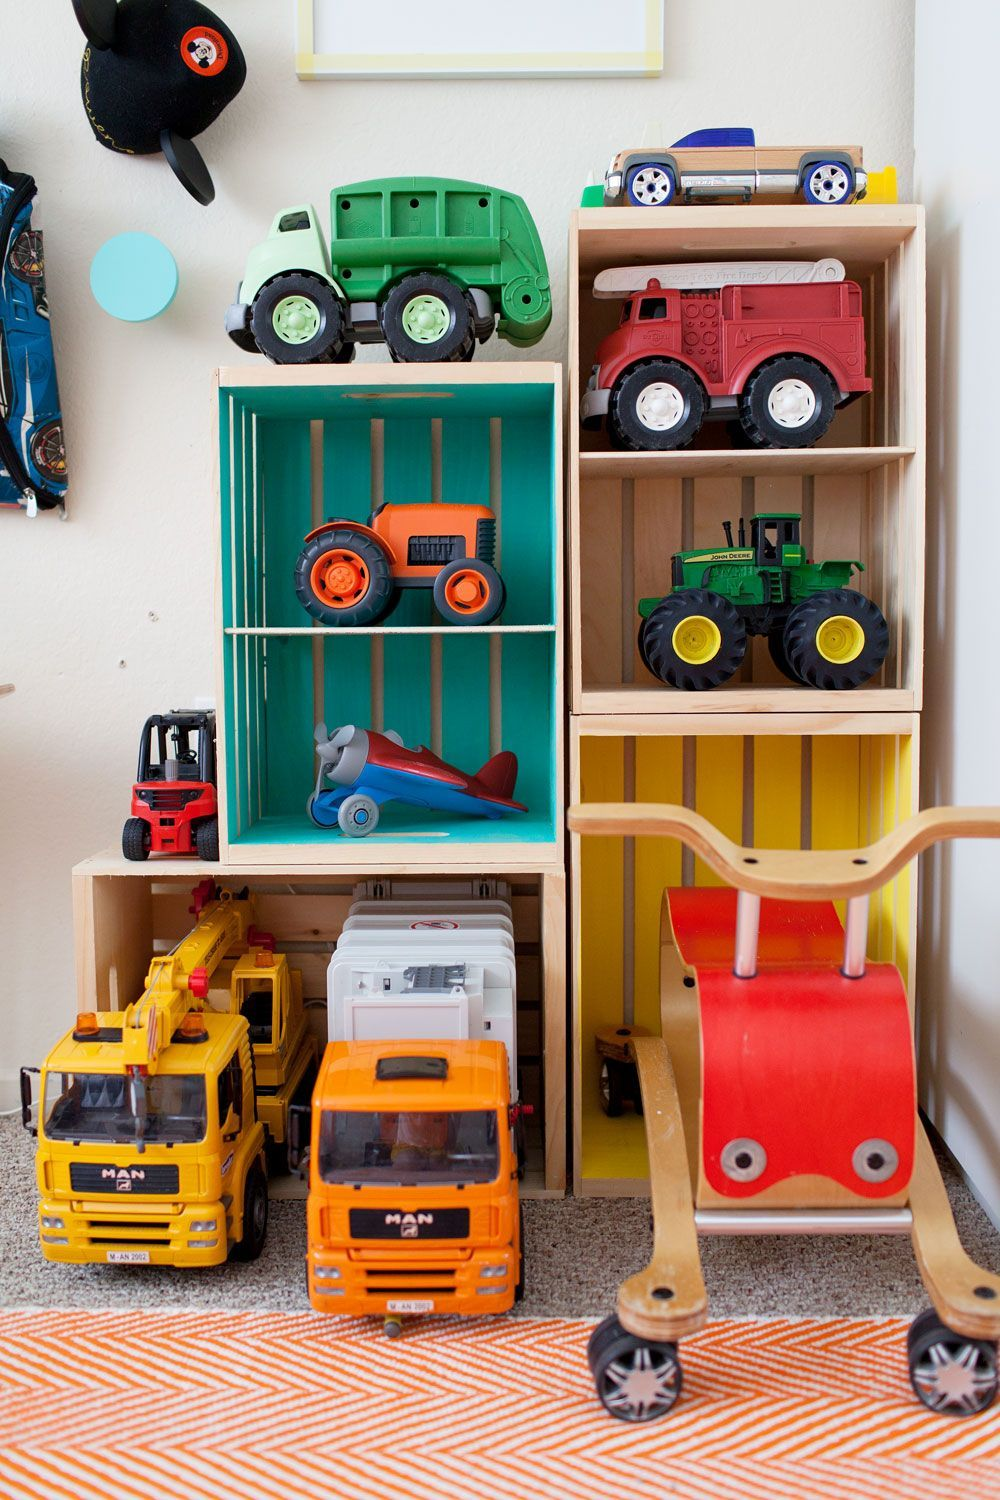 Diy Toy Organizer Diy Toy Storage Ideas Perfect For Small Spaces And Kids Diy Inspiration Toyorganize Storage Kids Room Playroom Storage Diy Toy Storage